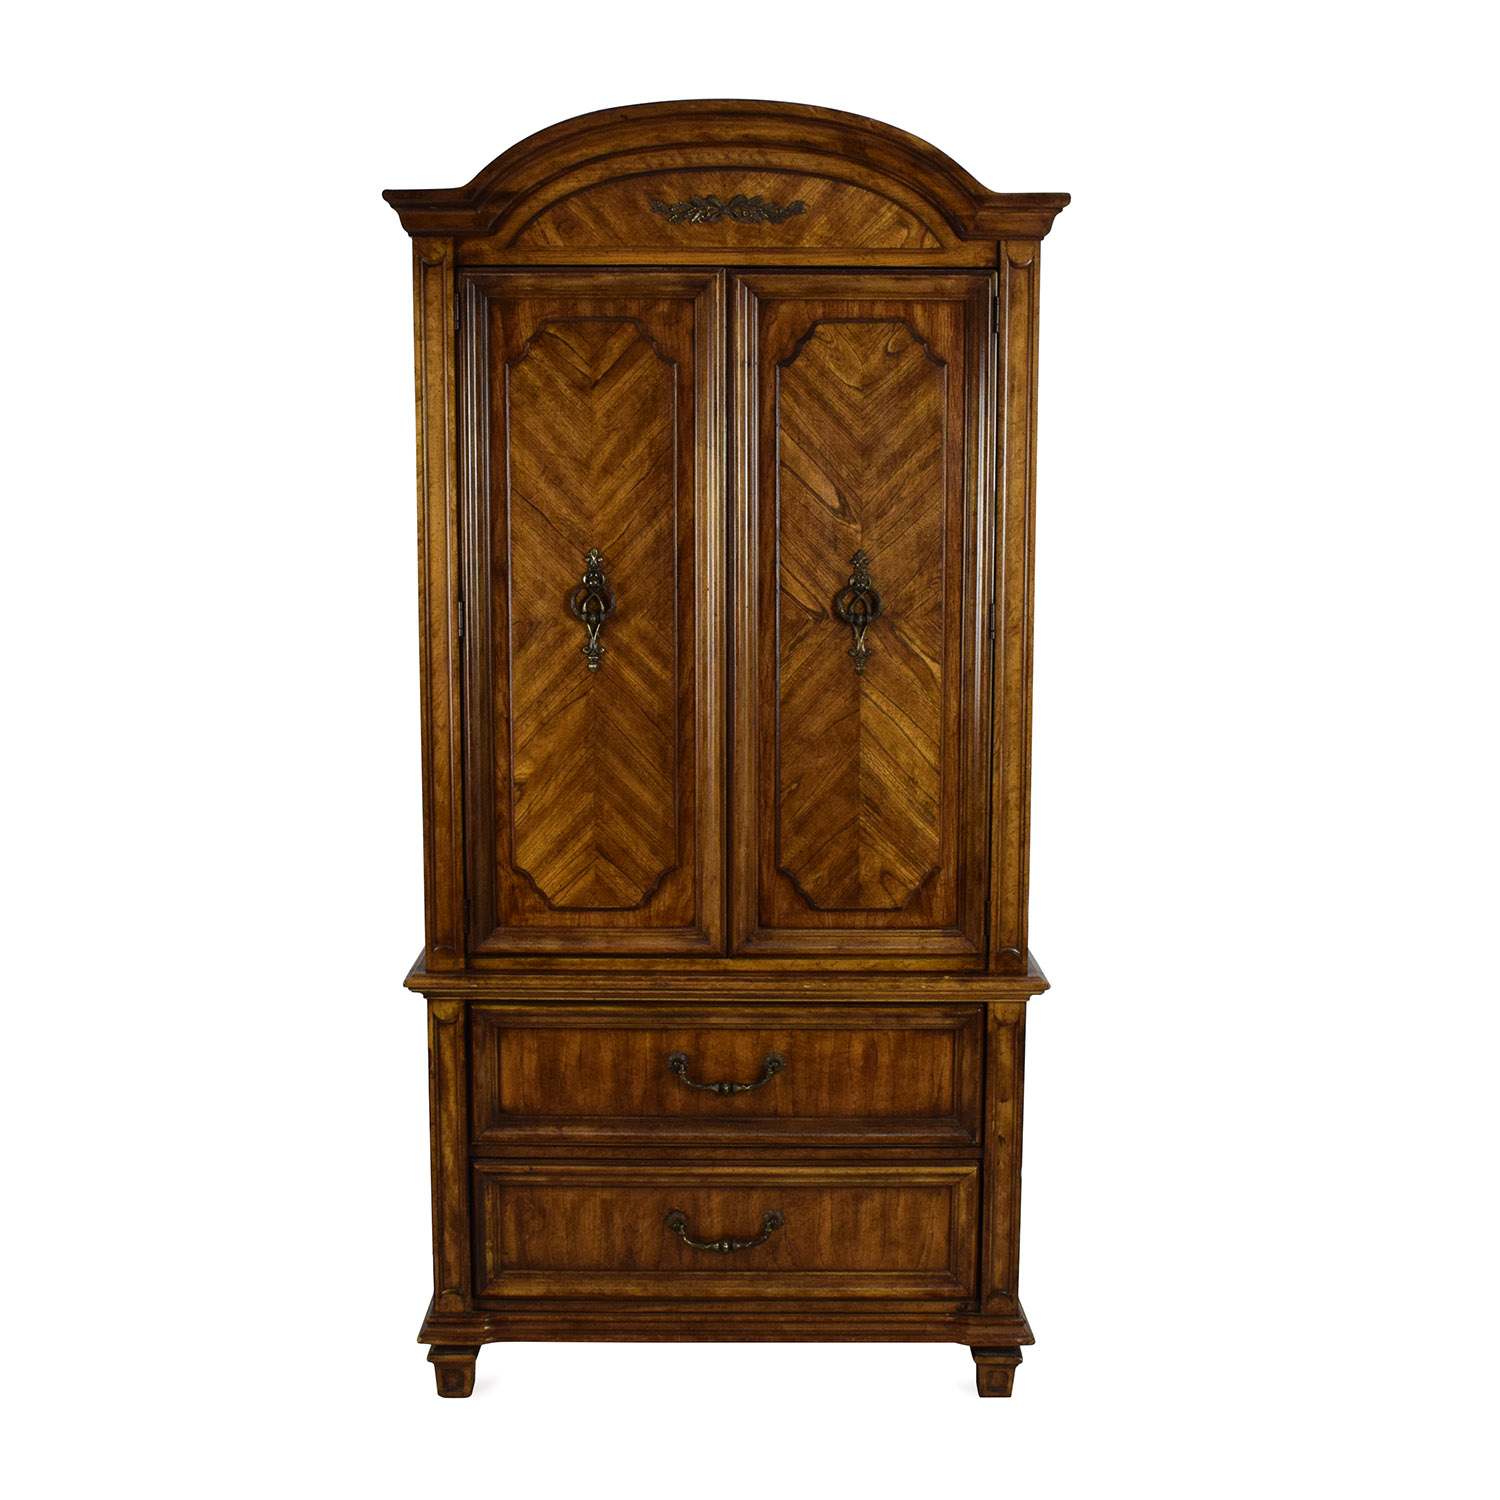 Stanley Furniture Stanley Furniture Armoire Wardrobe nj